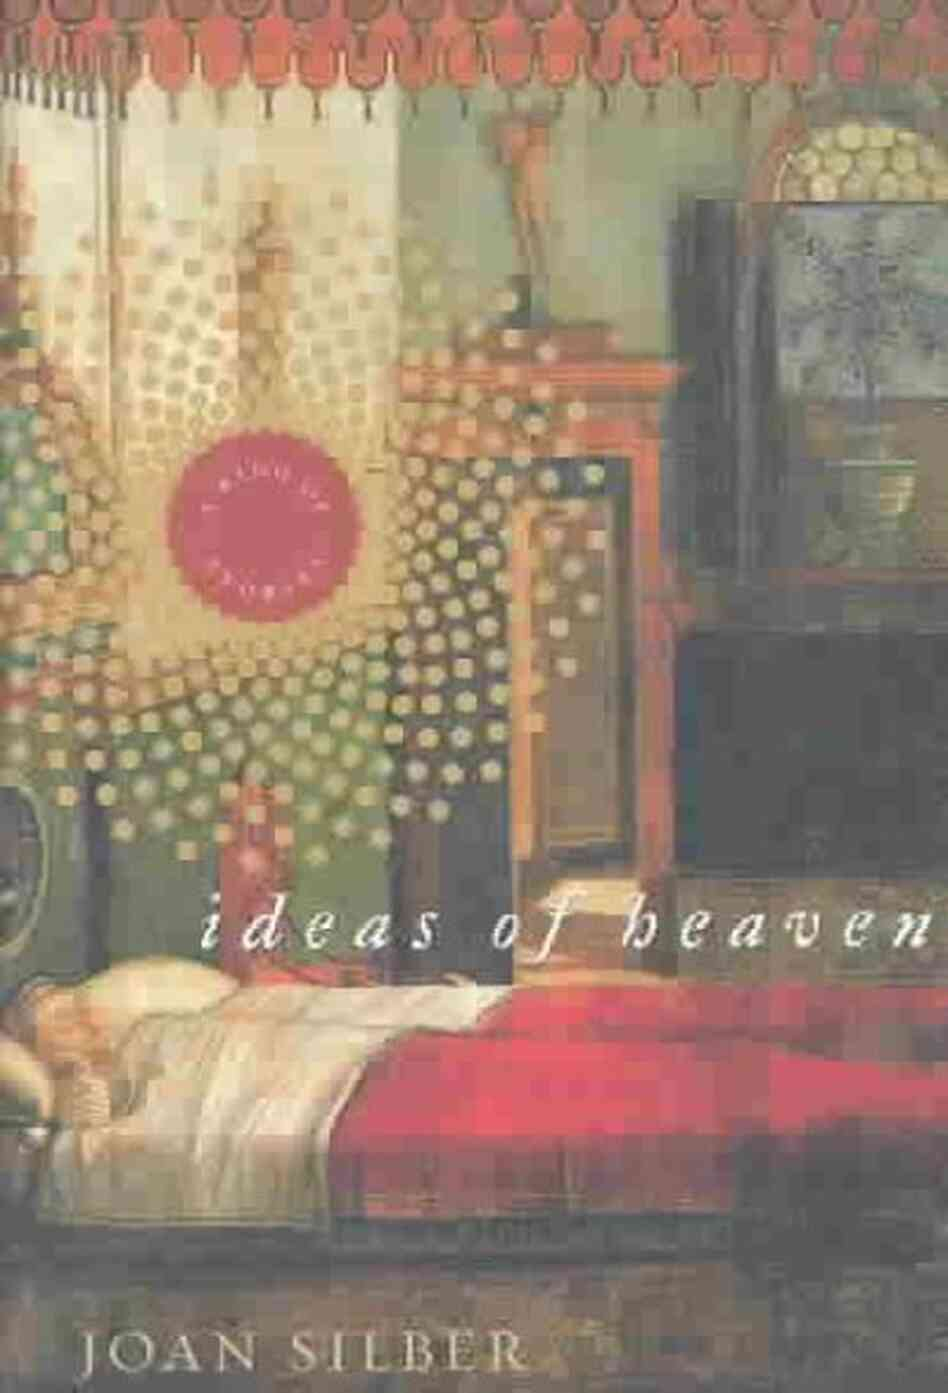 Ideas of Heaven